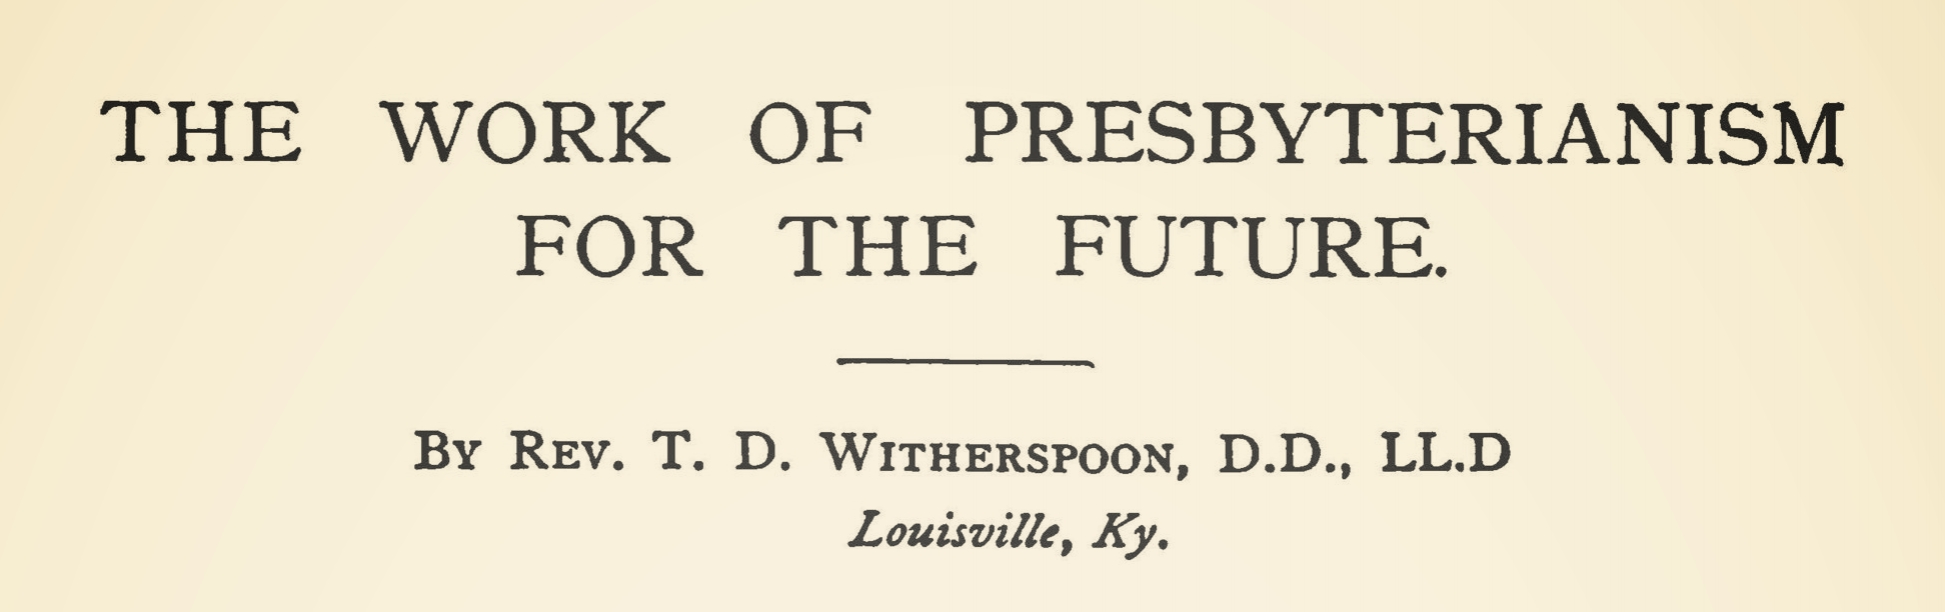 Witherspoon, Sr., Thomas Dwight, The Work of Presbyterianism For the Future Title Page.jpg